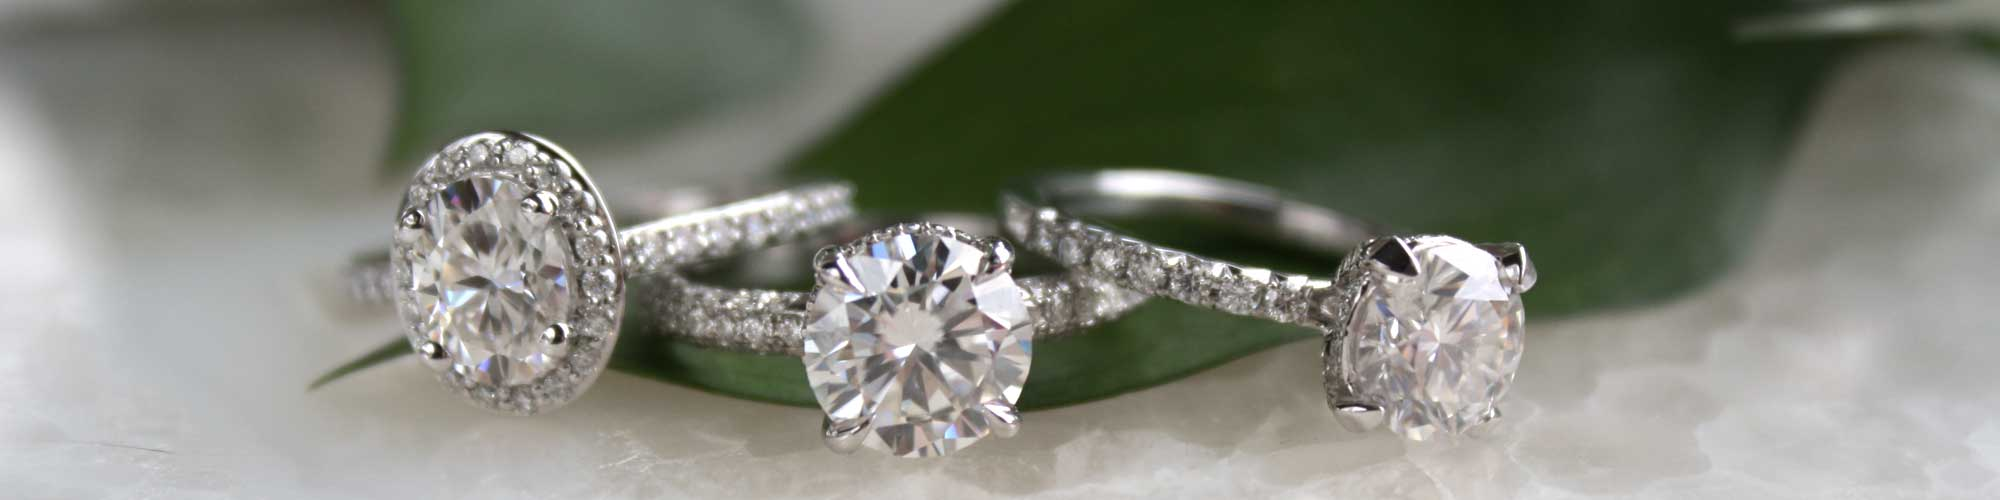 diamanti by quorri artisan diamonds and engagement rings